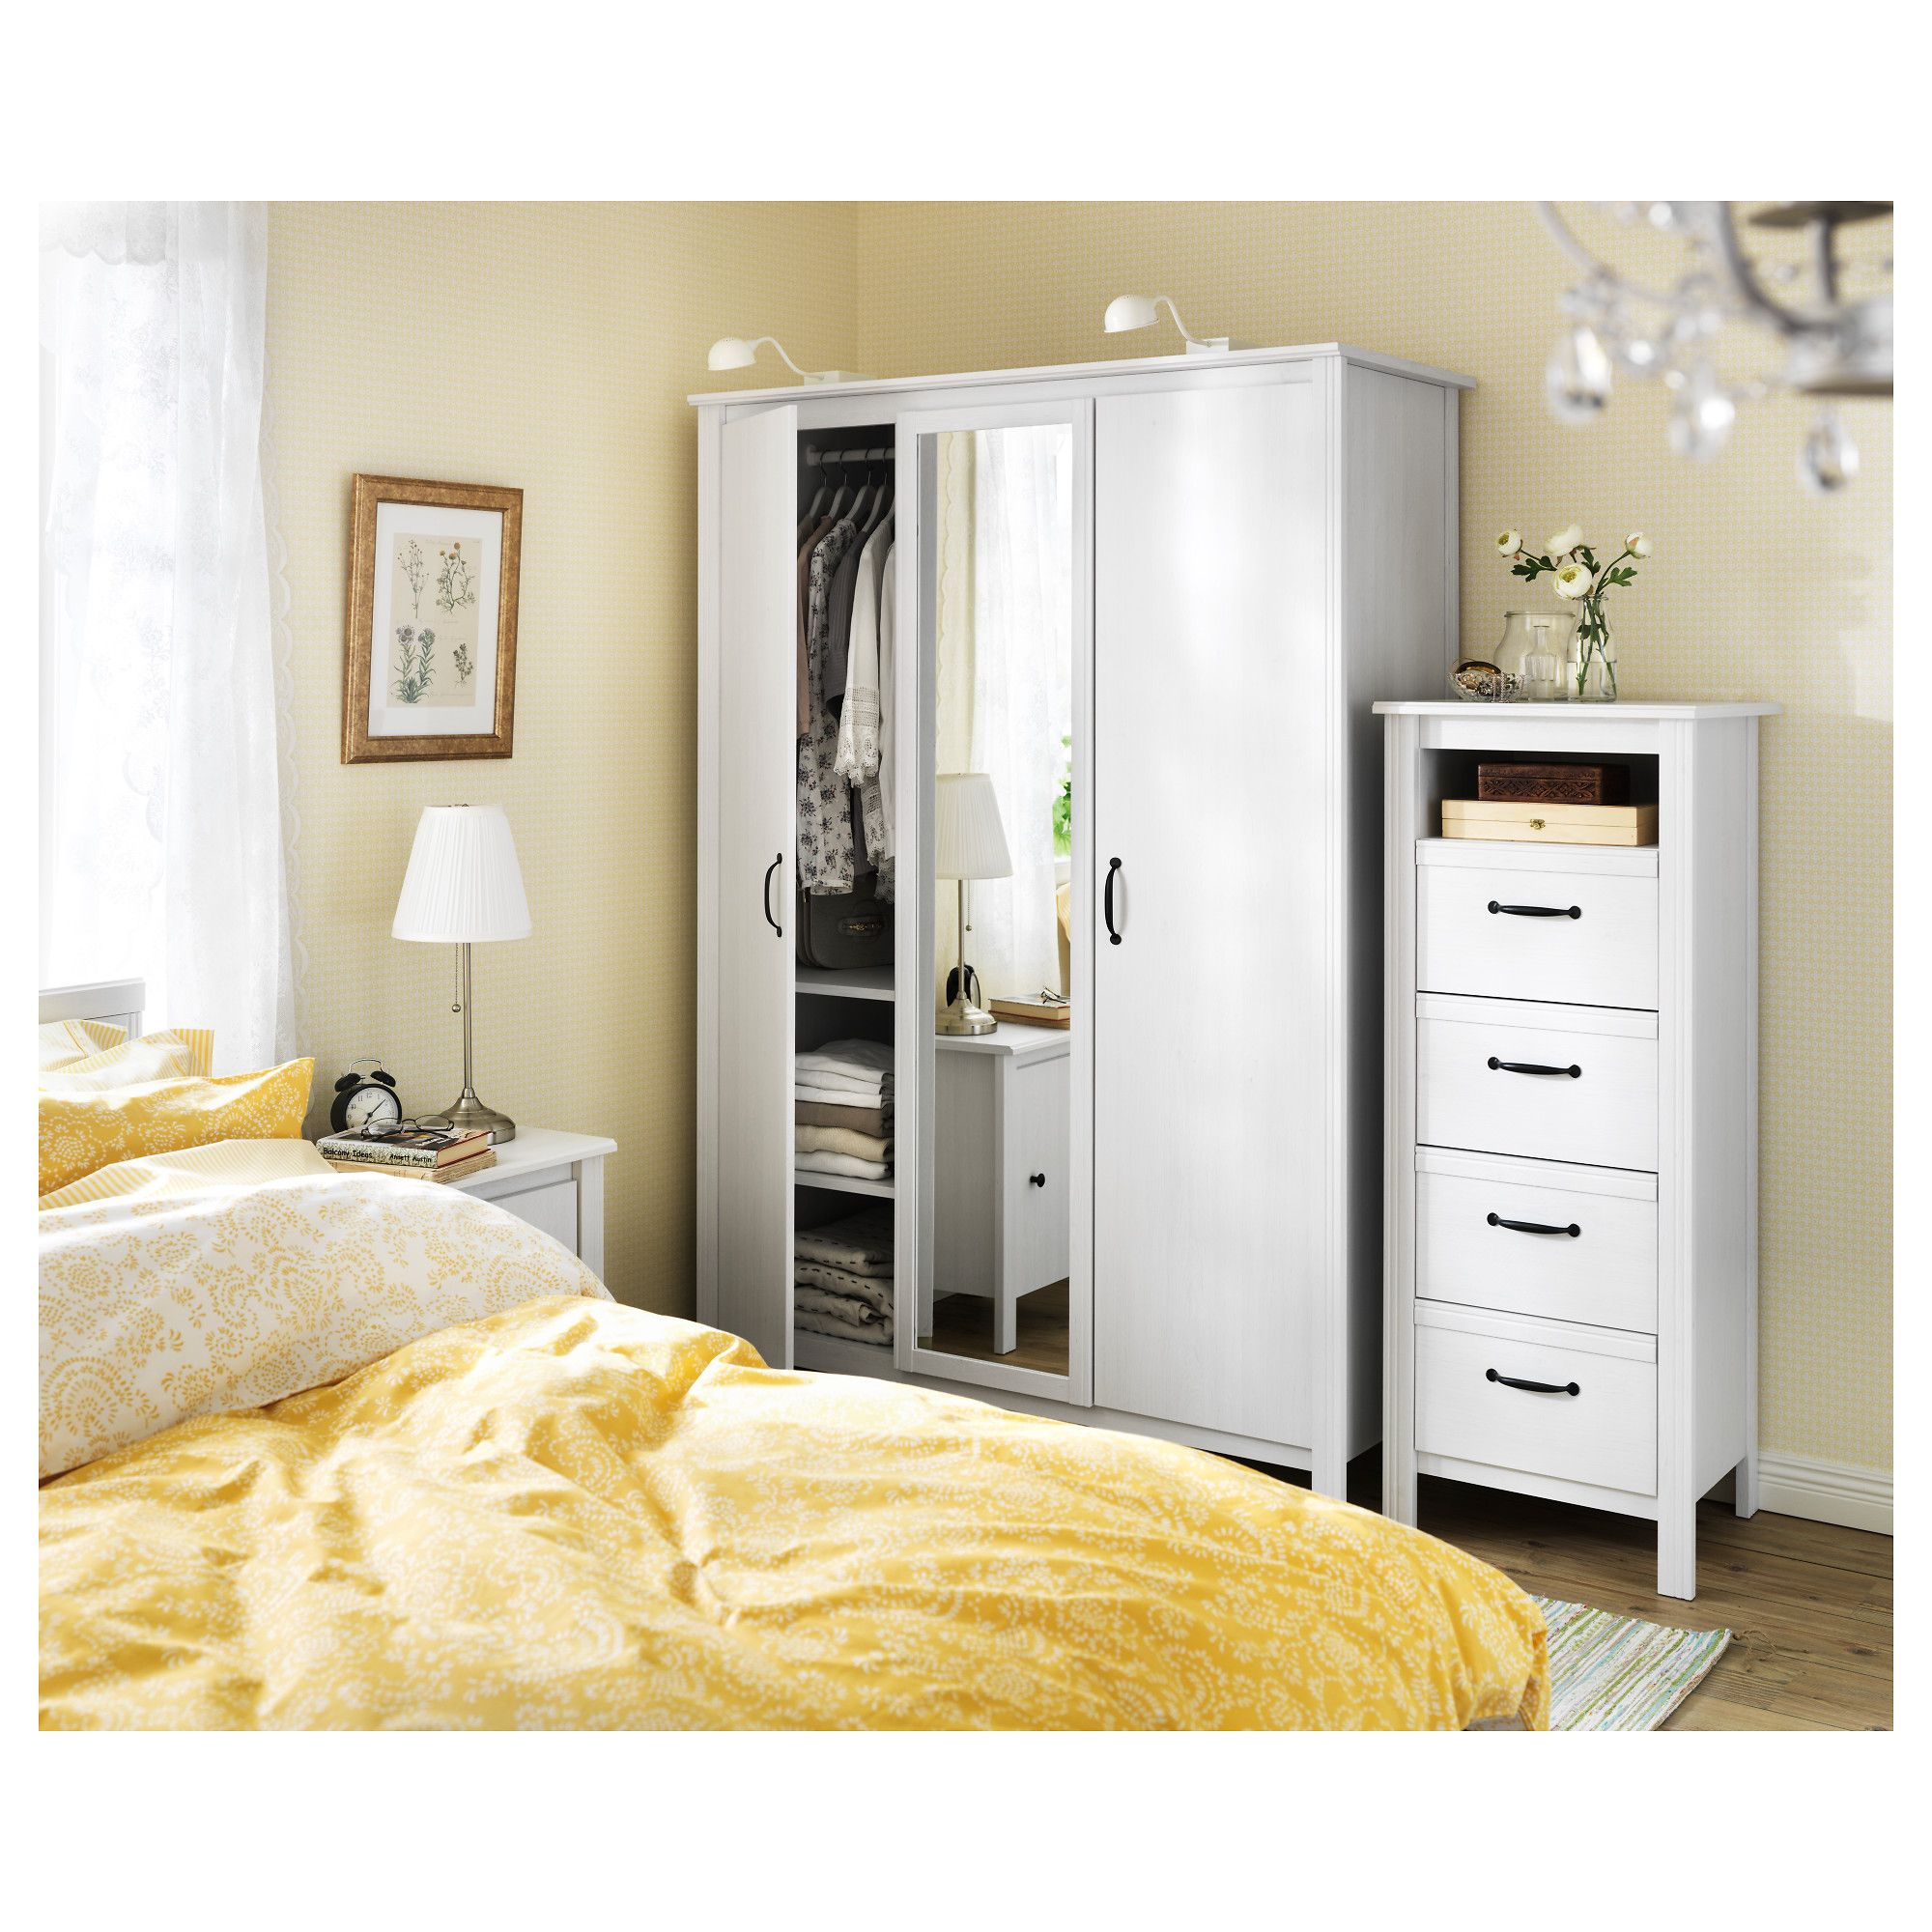 en wardrobe ireland canvas doors wardrobes well as folded standing with products and dublin ie ikea brimnes for hanging free white short long perfect